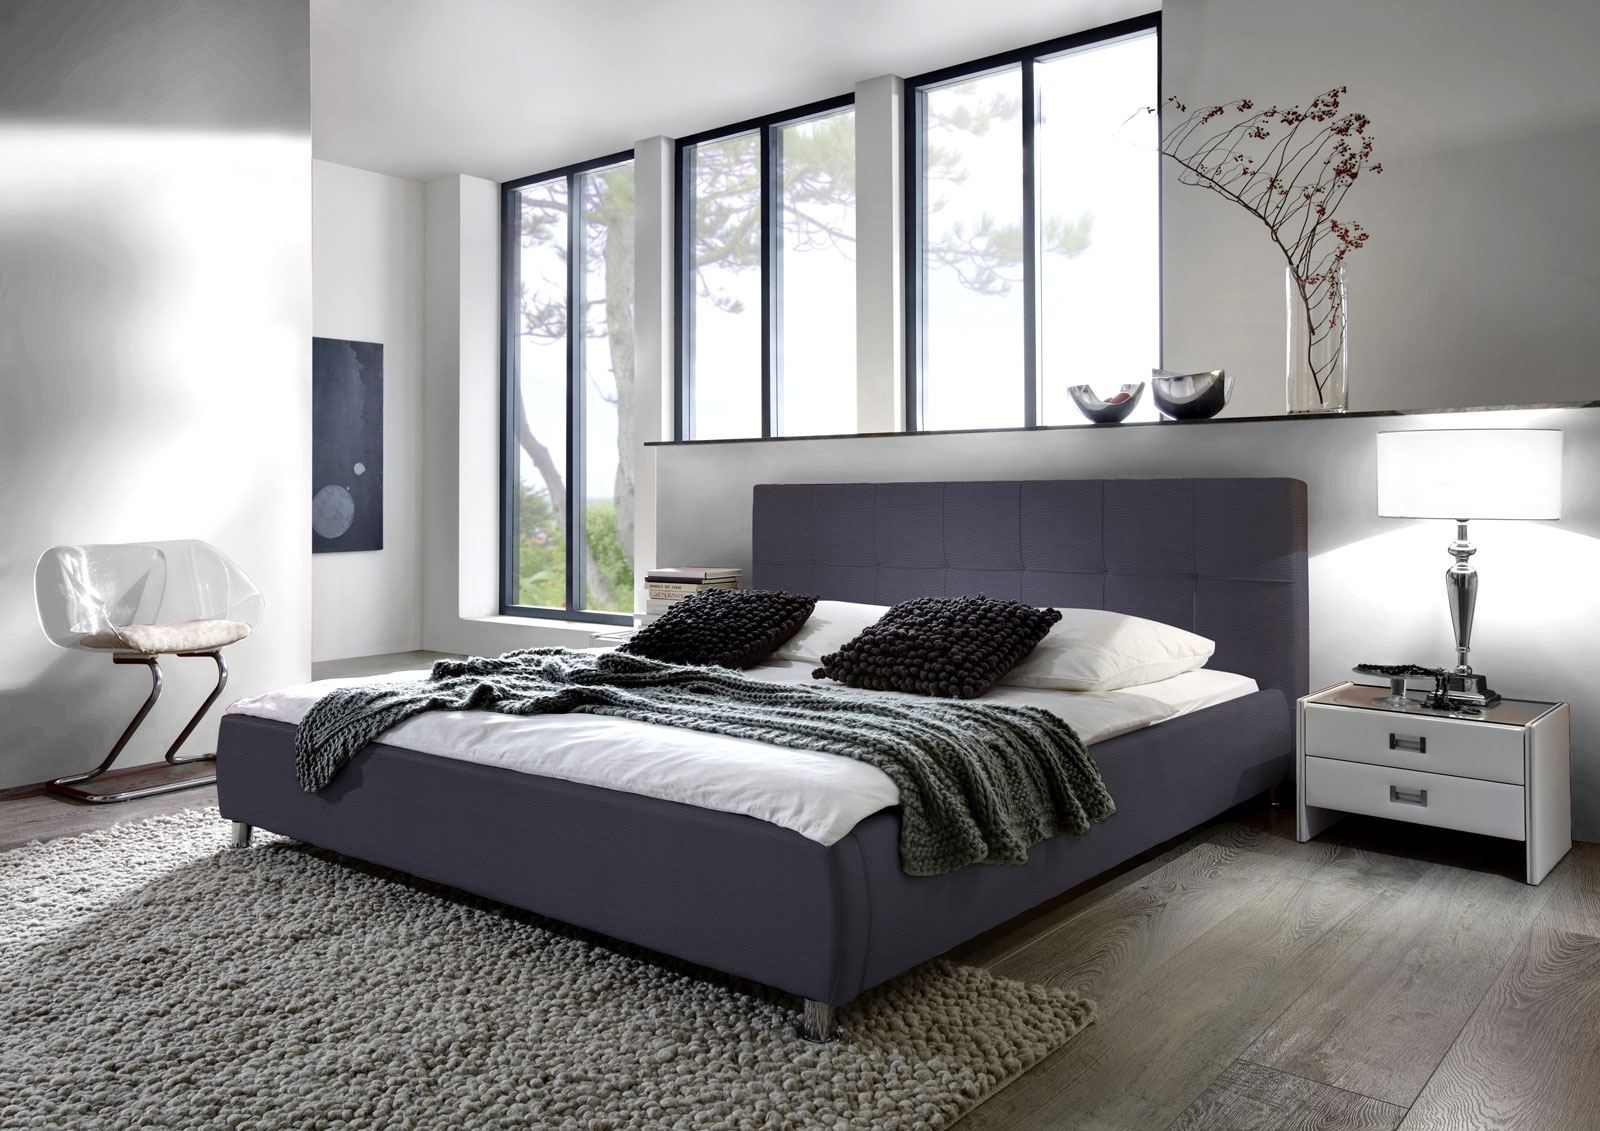 sam polsterbett 180 x 200 cm grau zarah demn chst. Black Bedroom Furniture Sets. Home Design Ideas